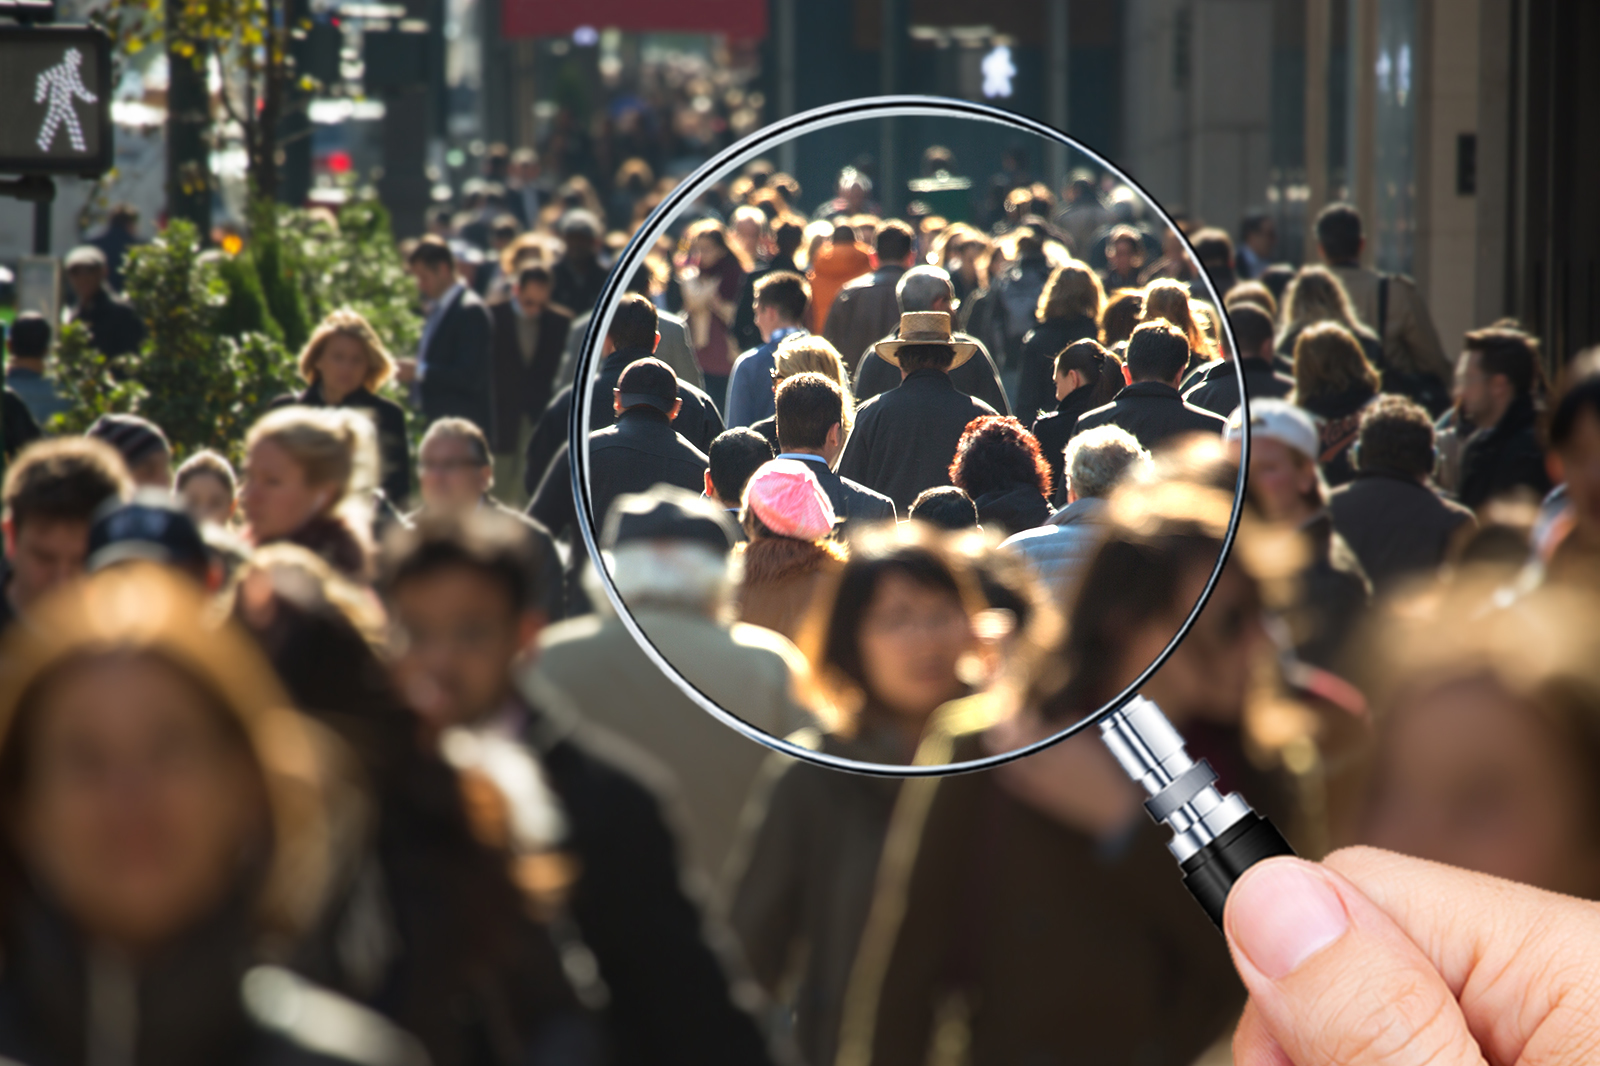 a handheld magnifying glass held over an image of people